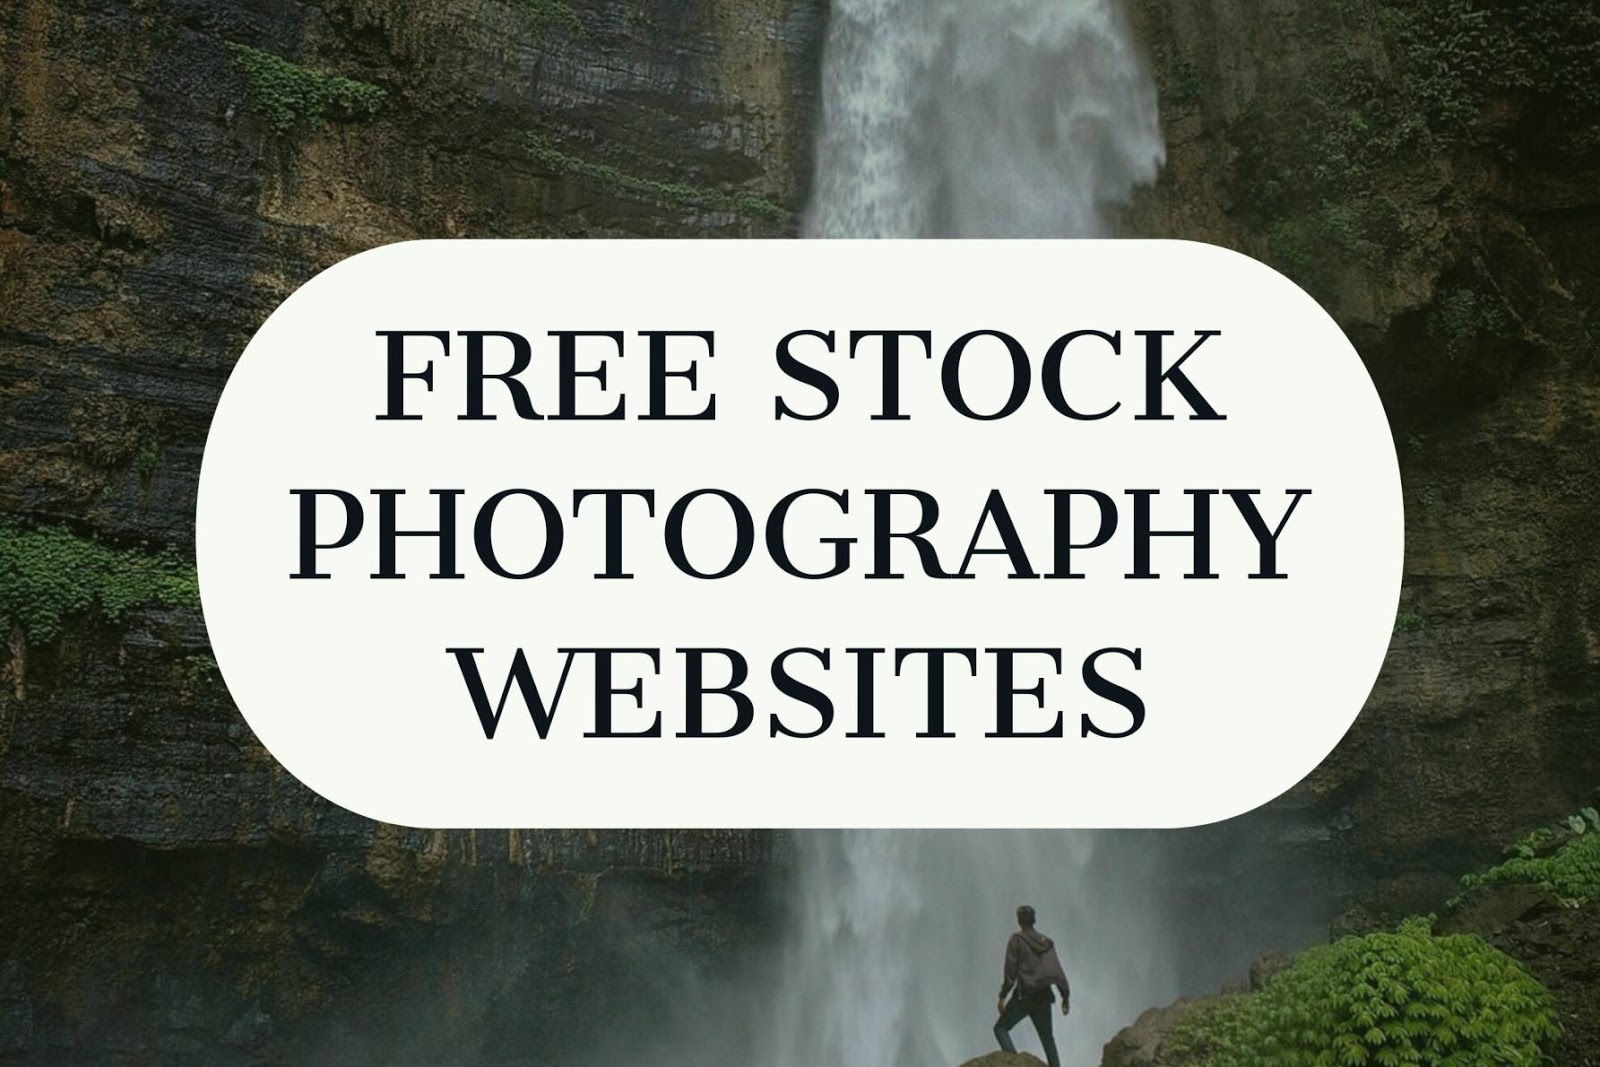 Free Stock Photography Images Sites